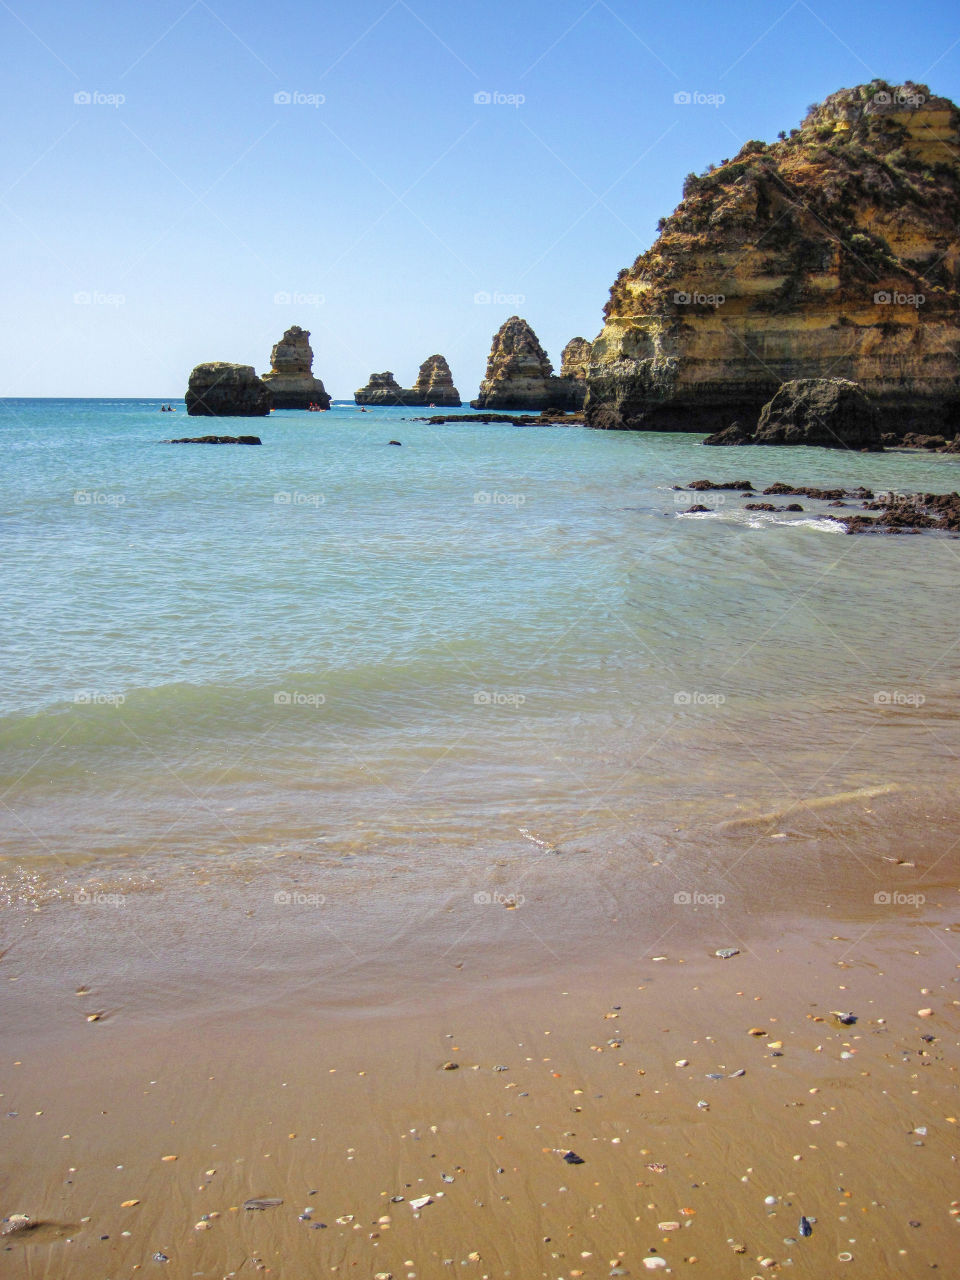 Scenic view of beach and cliff, Portugal, Algarve